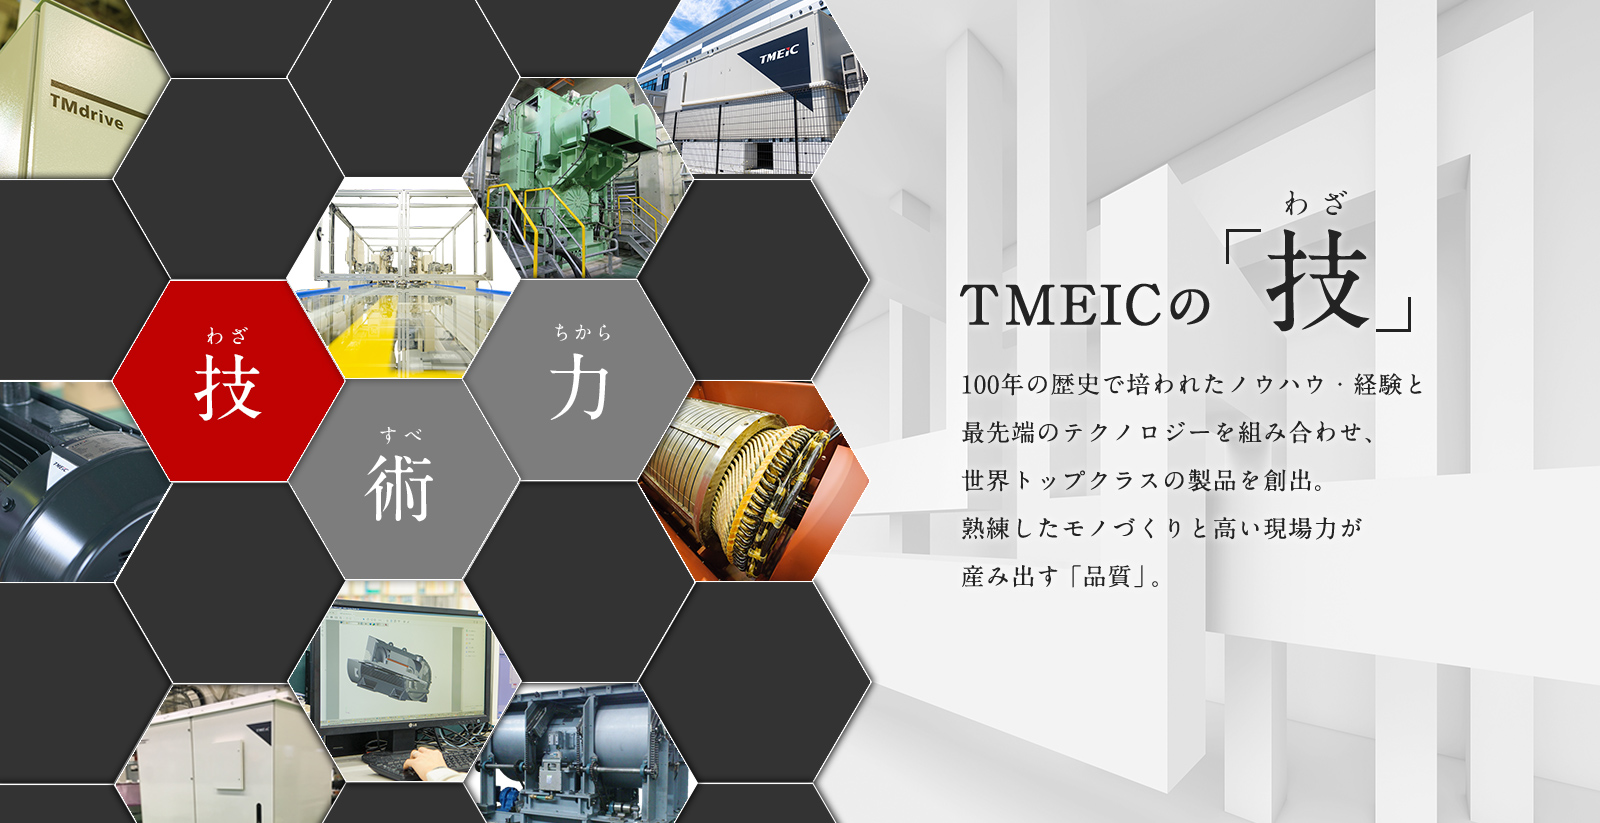 TMEICの「技(わざ)」